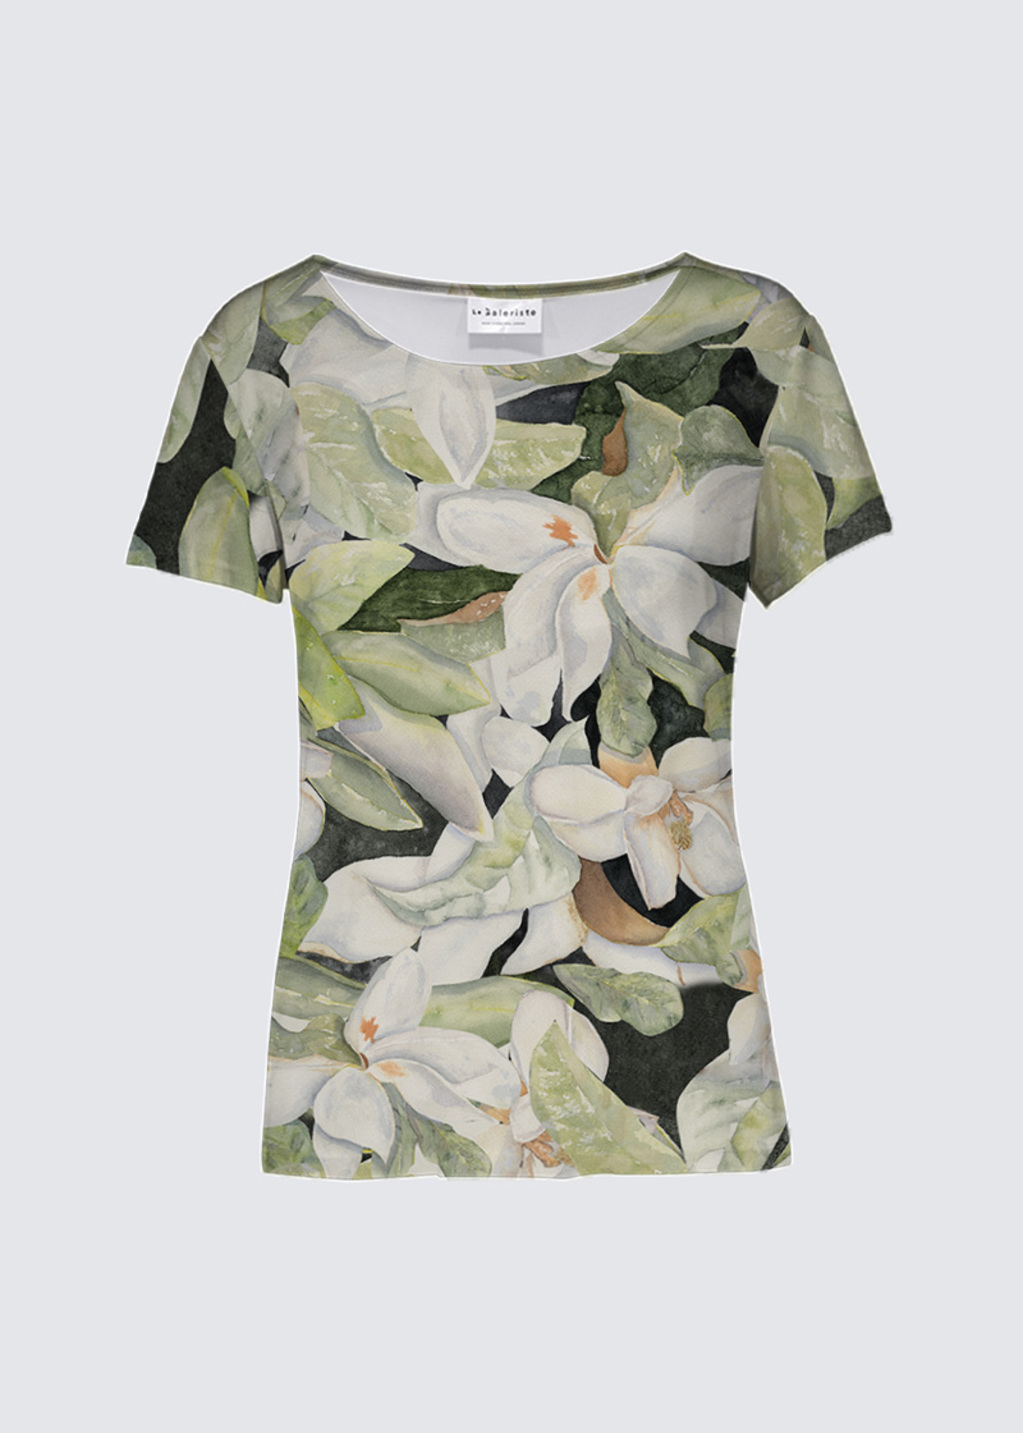 Picture of Magnolias K Smith Tee